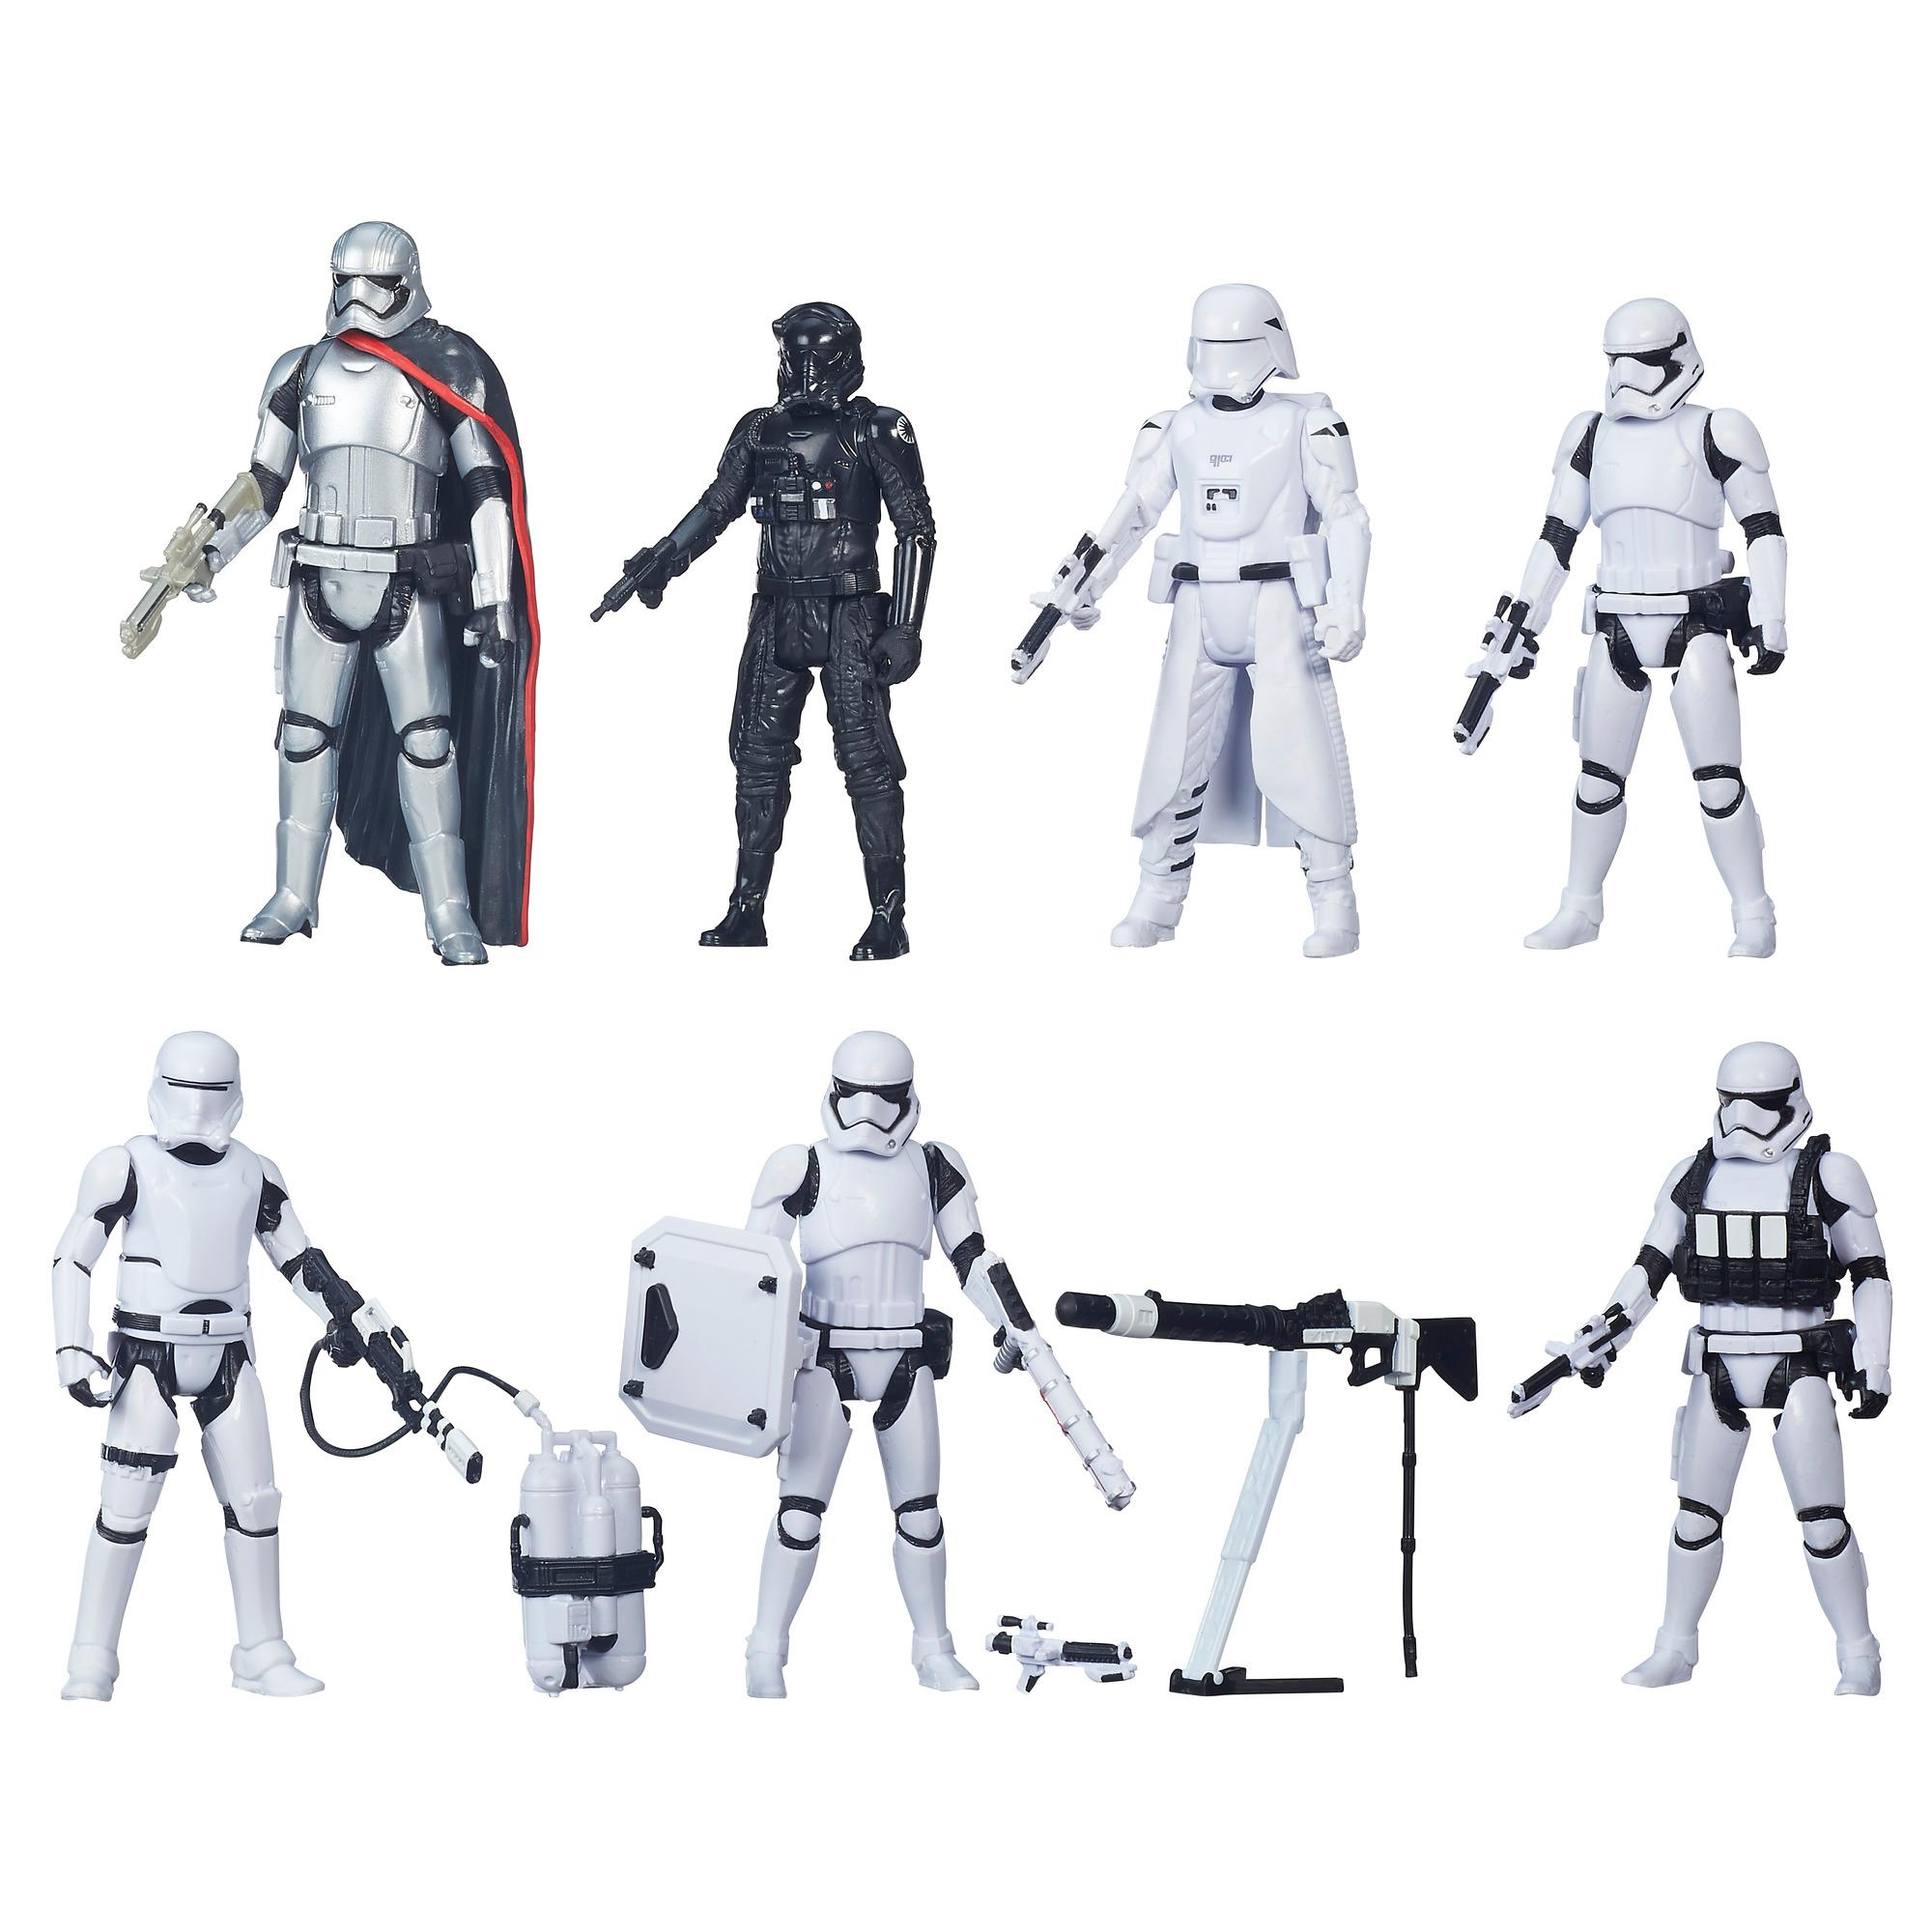 Star Wars Toy Game : Amazon star wars the force awakens inch figure